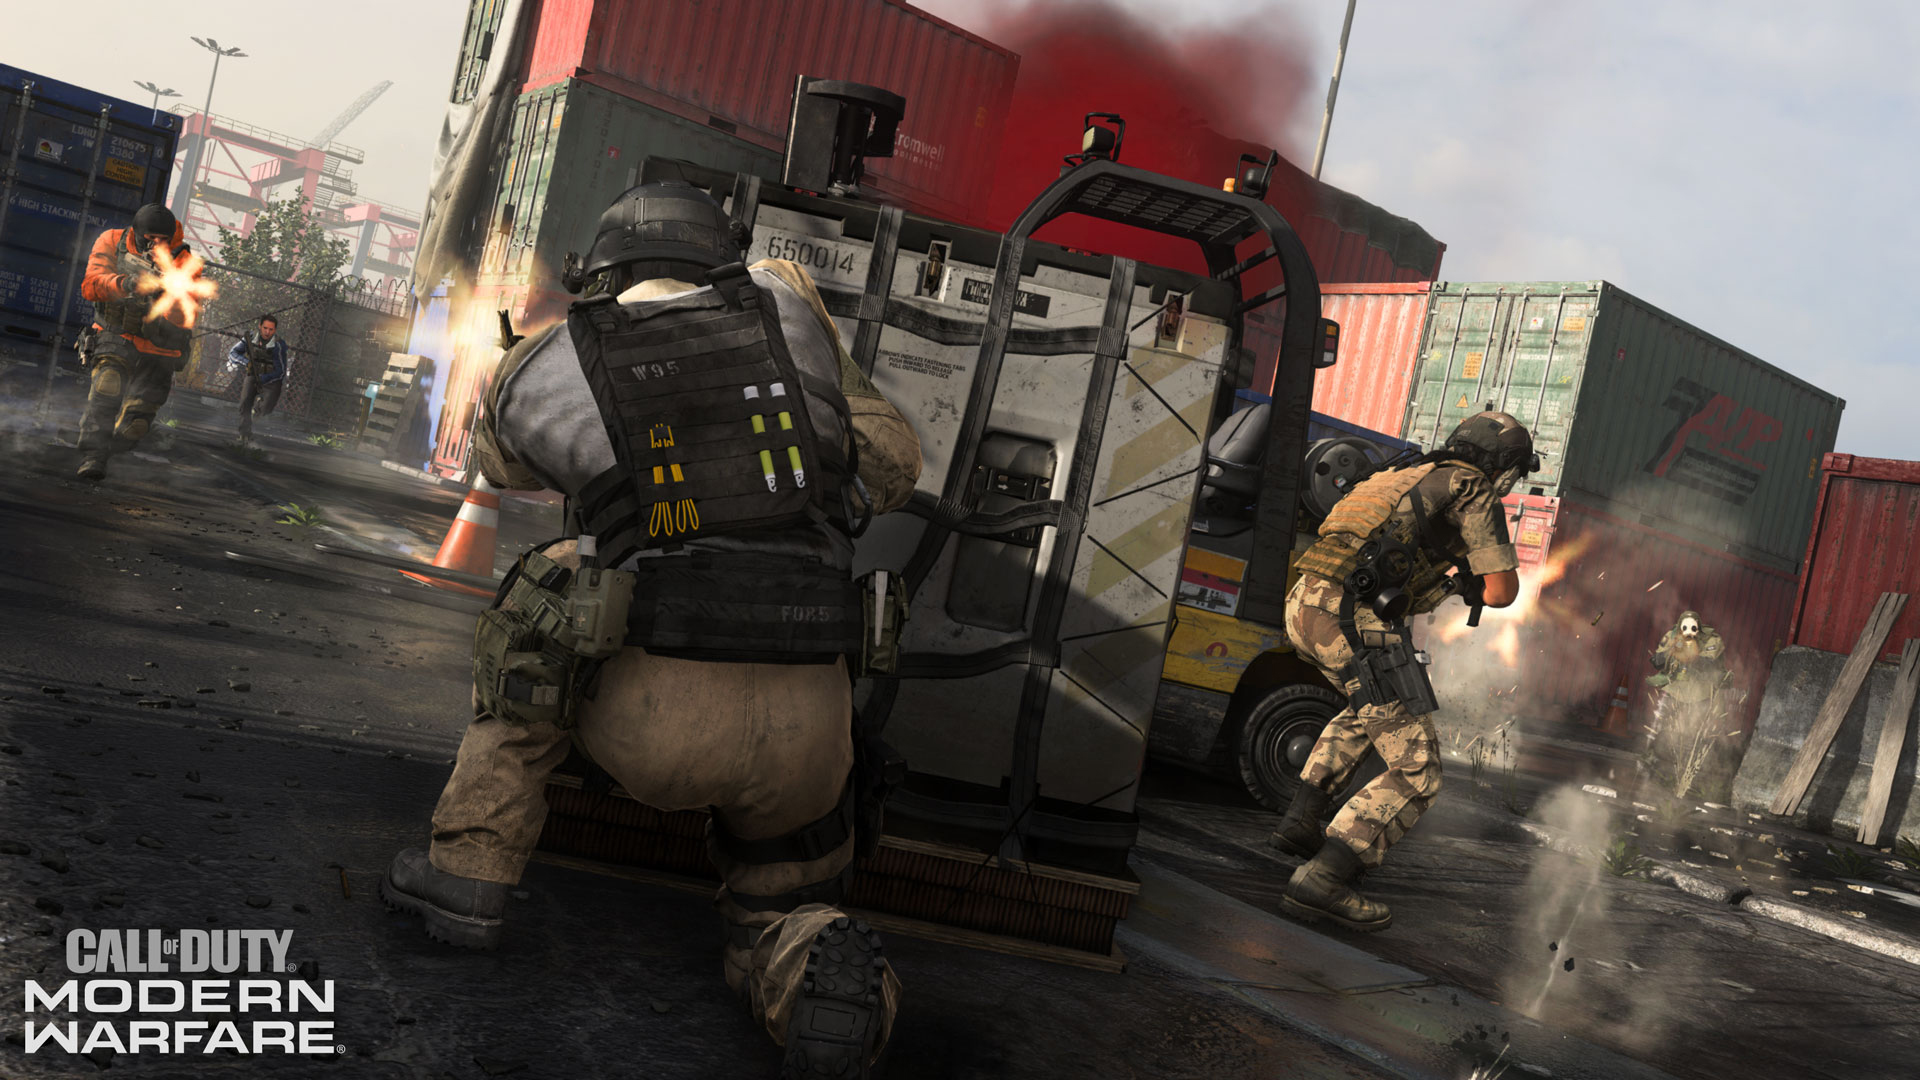 This Week in Call of Duty® - May 26 - Image 4